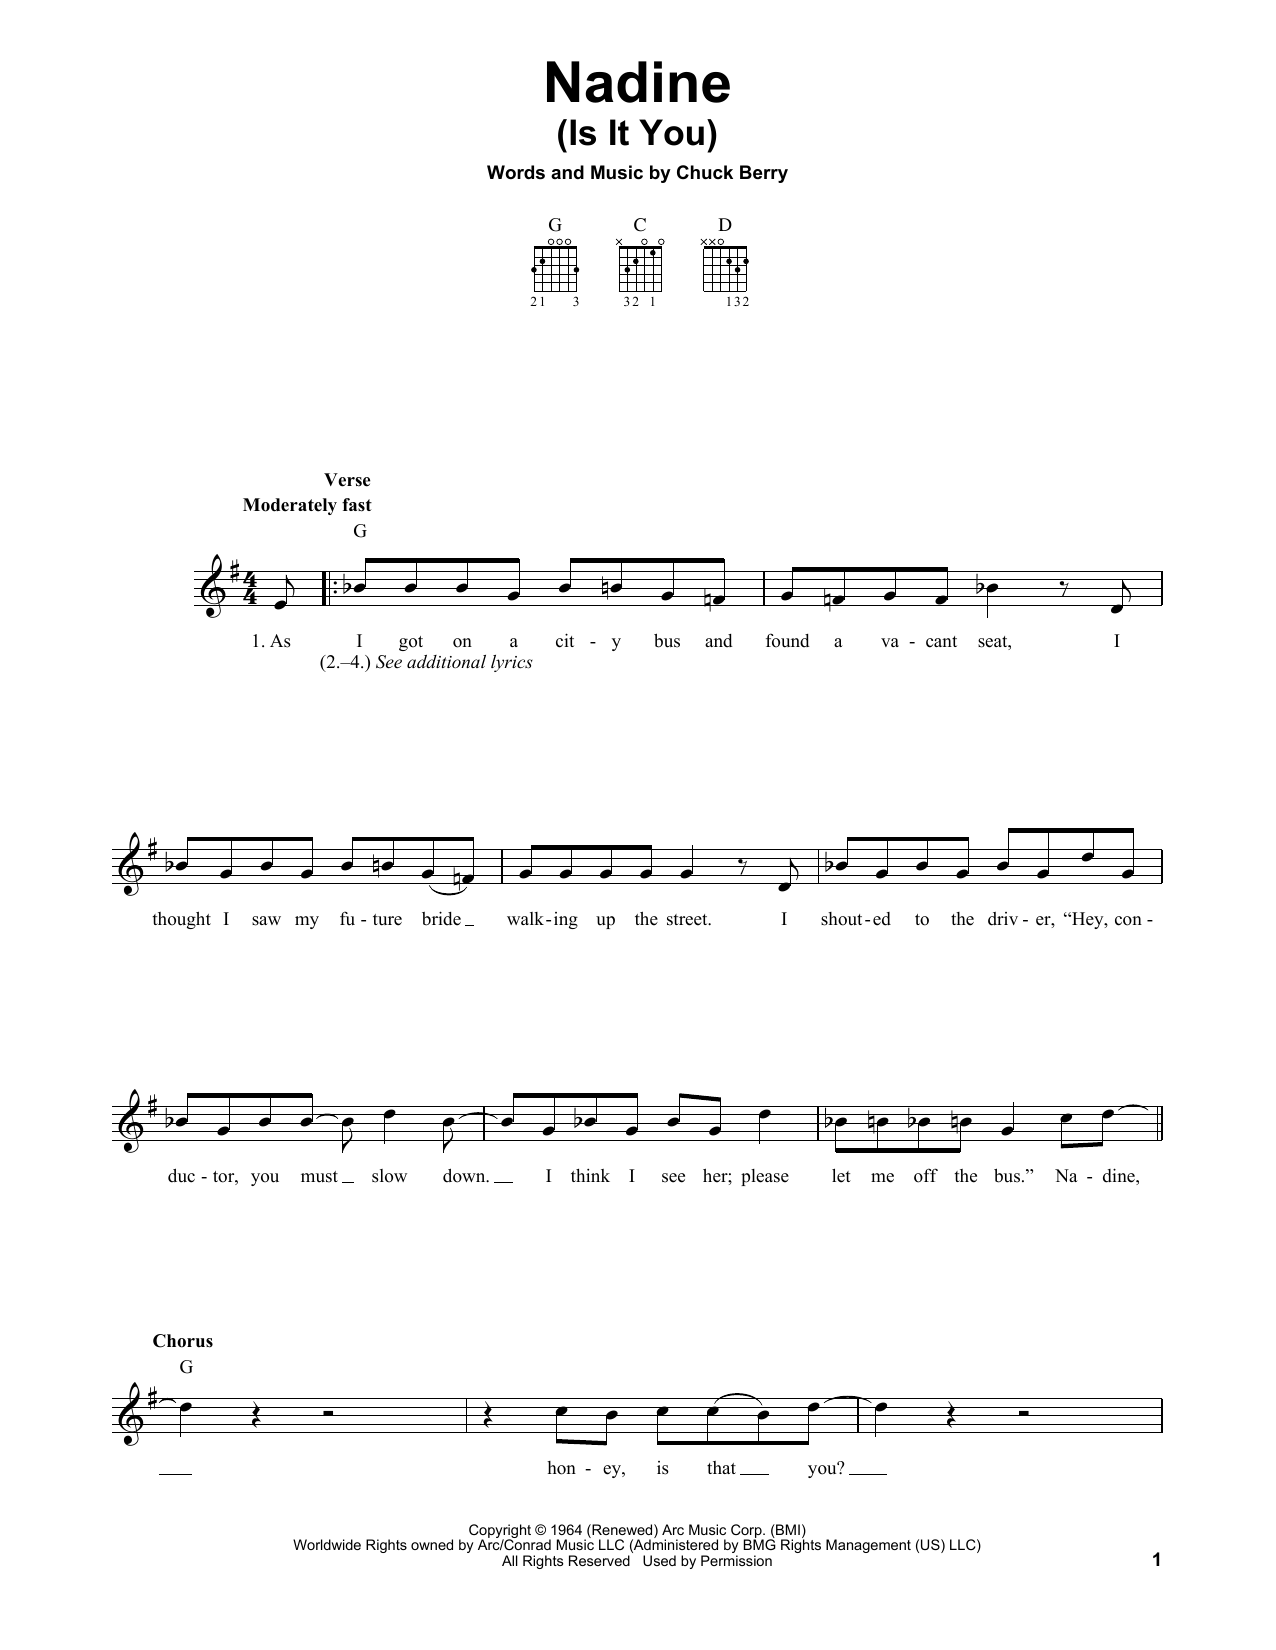 Nadine (Is It You) Sheet Music